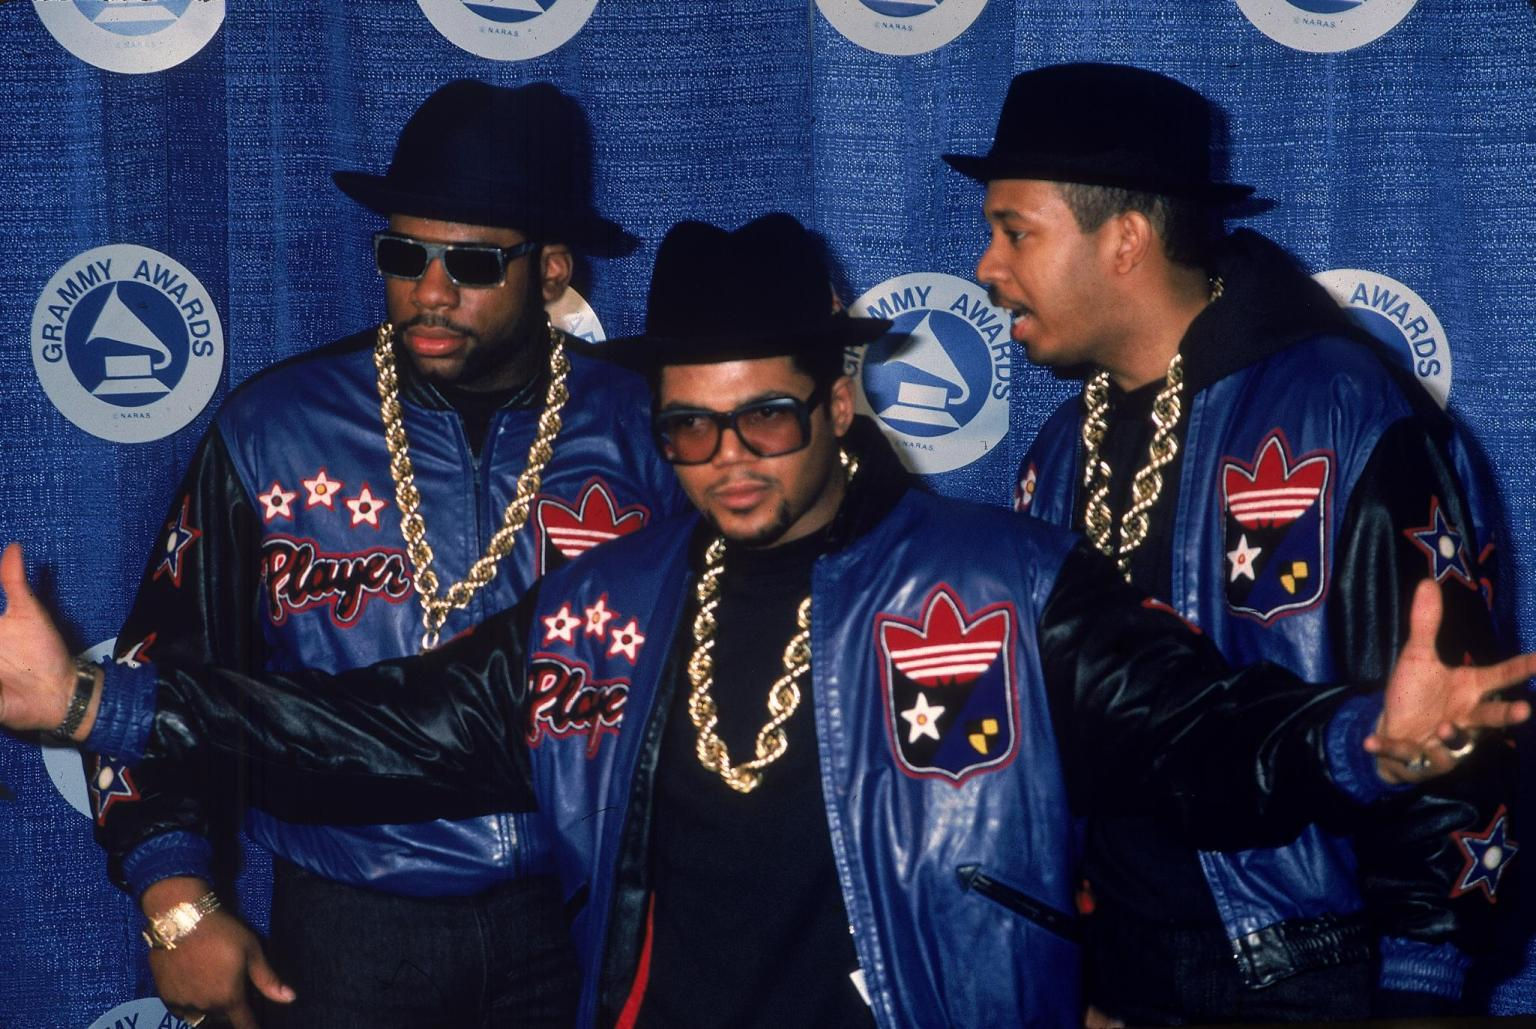 Charges expected in unsolved 2002 murder of Run-DMC's Jam Master Jay